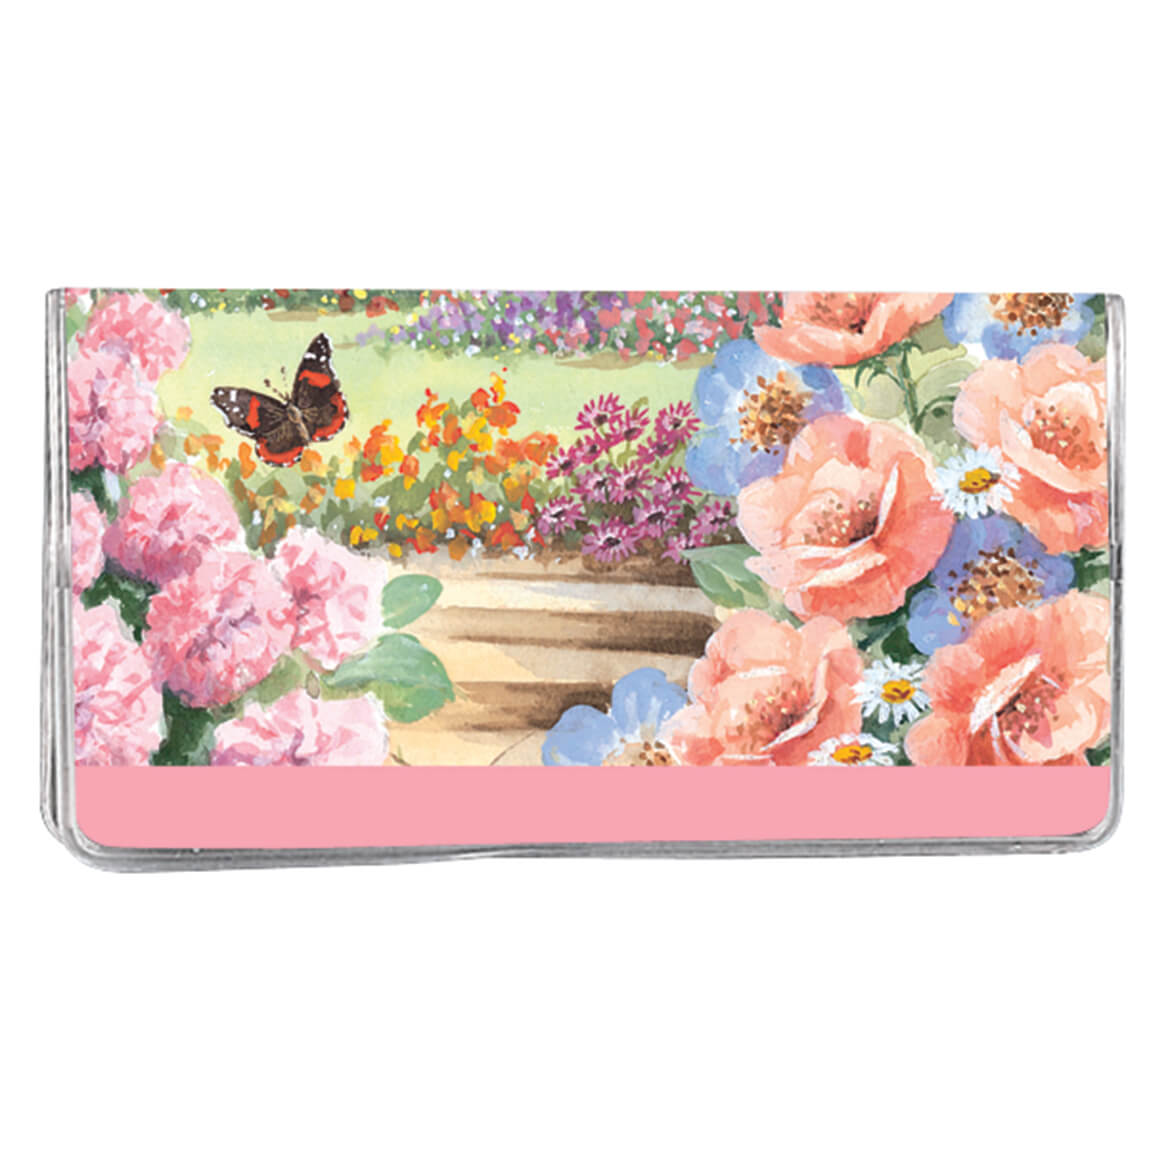 Butterfly Garden 2 Year Pocket Planner Keep track of dates and holidays with this butterfly 2 year pocket planner! Notepad included. Folds to 6 3/4  x 3 5/8 . Makes a great gift! Specify name, up to 25 letters and spaces.